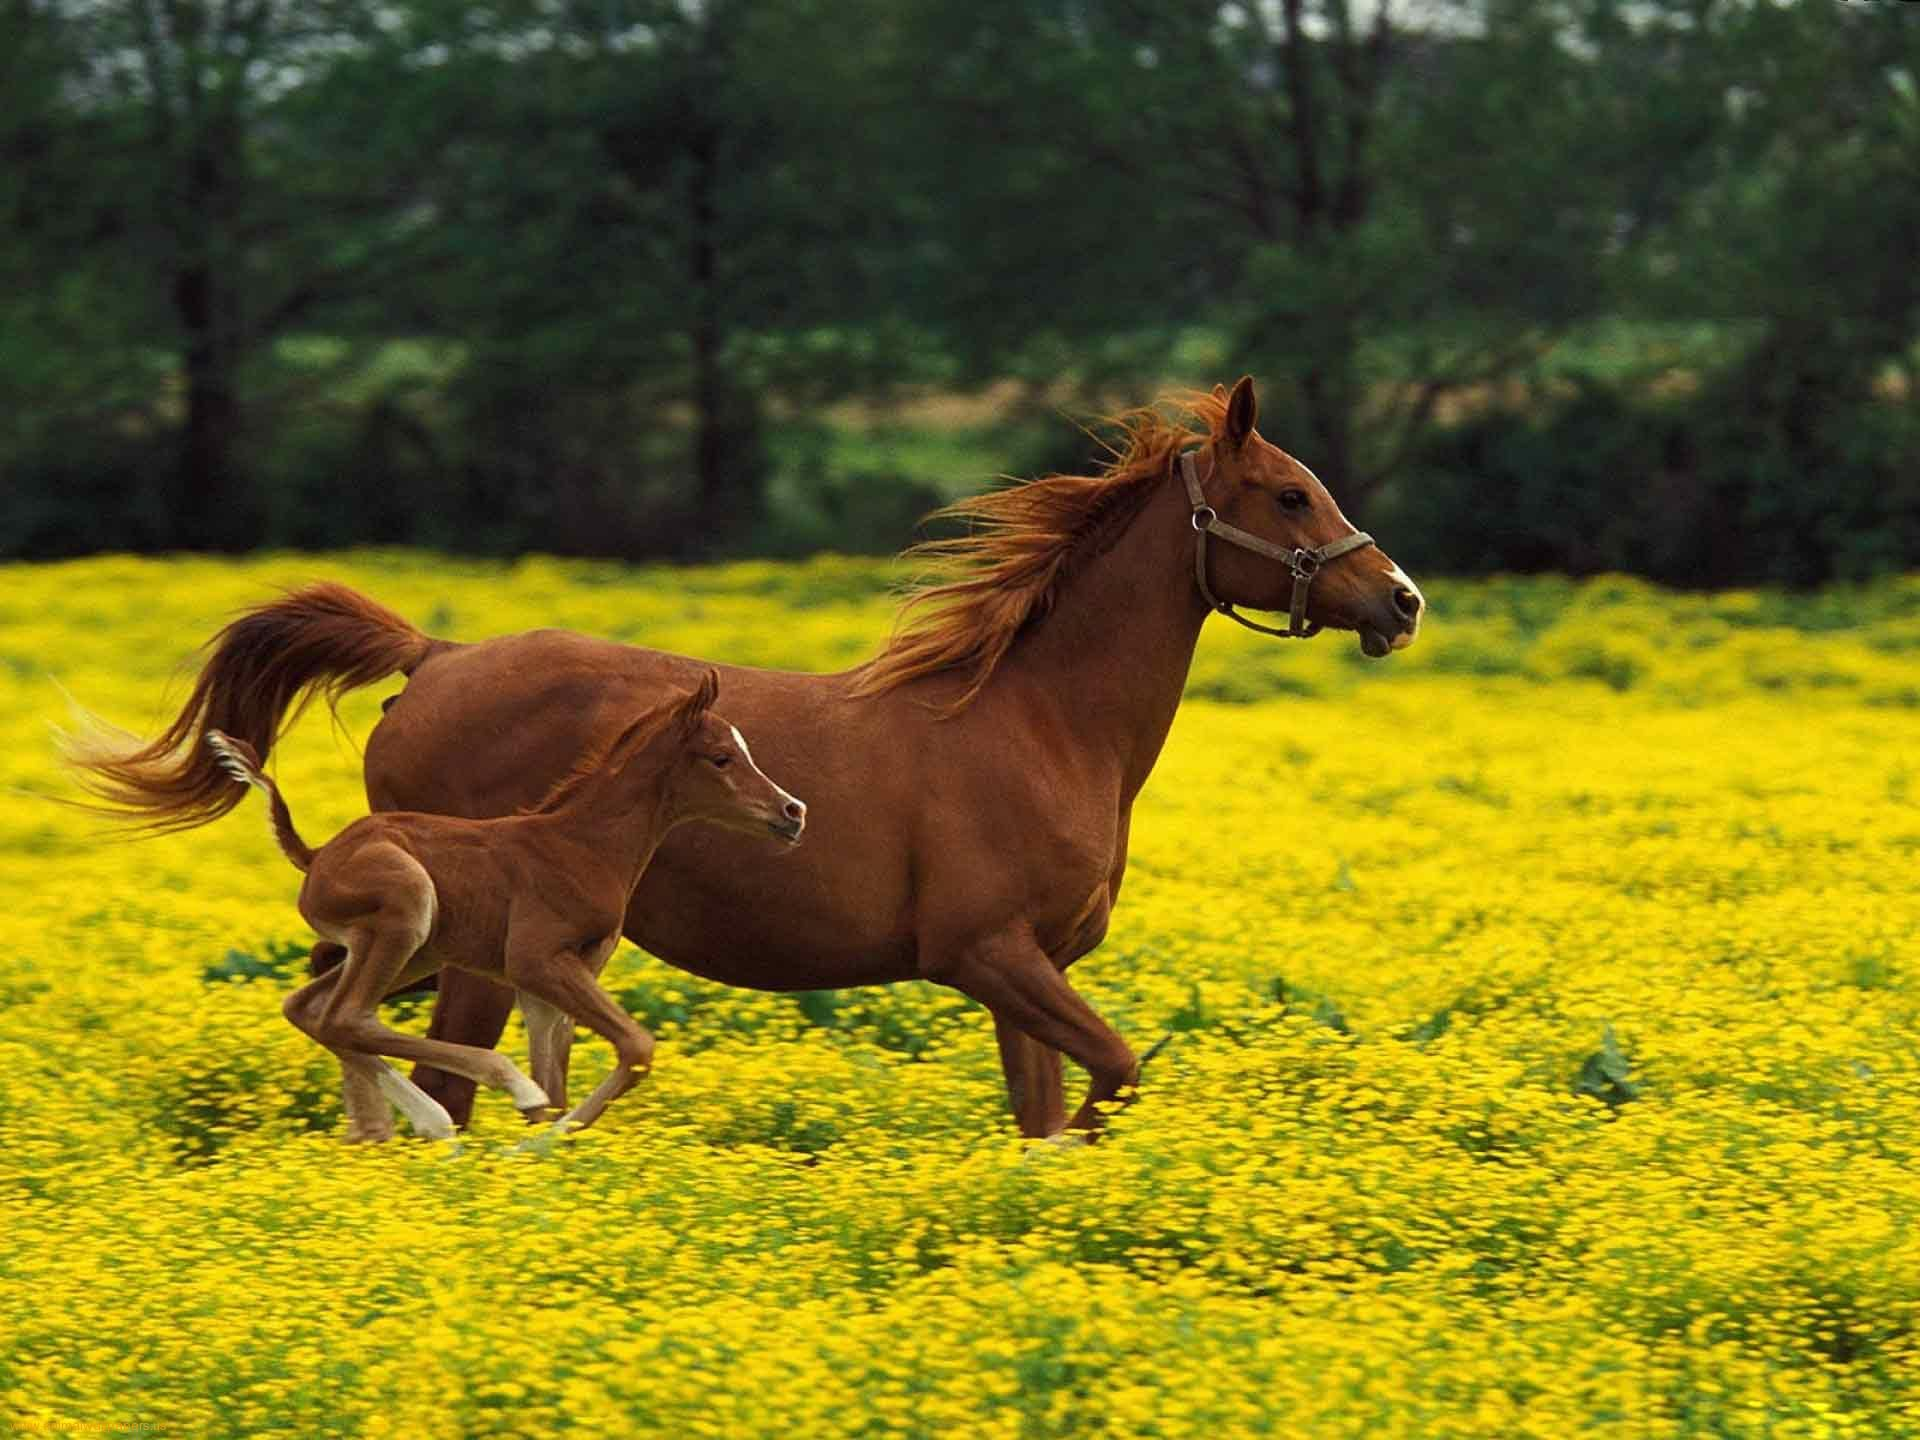 Download Wallpaper Horse Spring - 3542f5e318011e37d132efb008ca09c5  Perfect Image Reference_356698.jpg